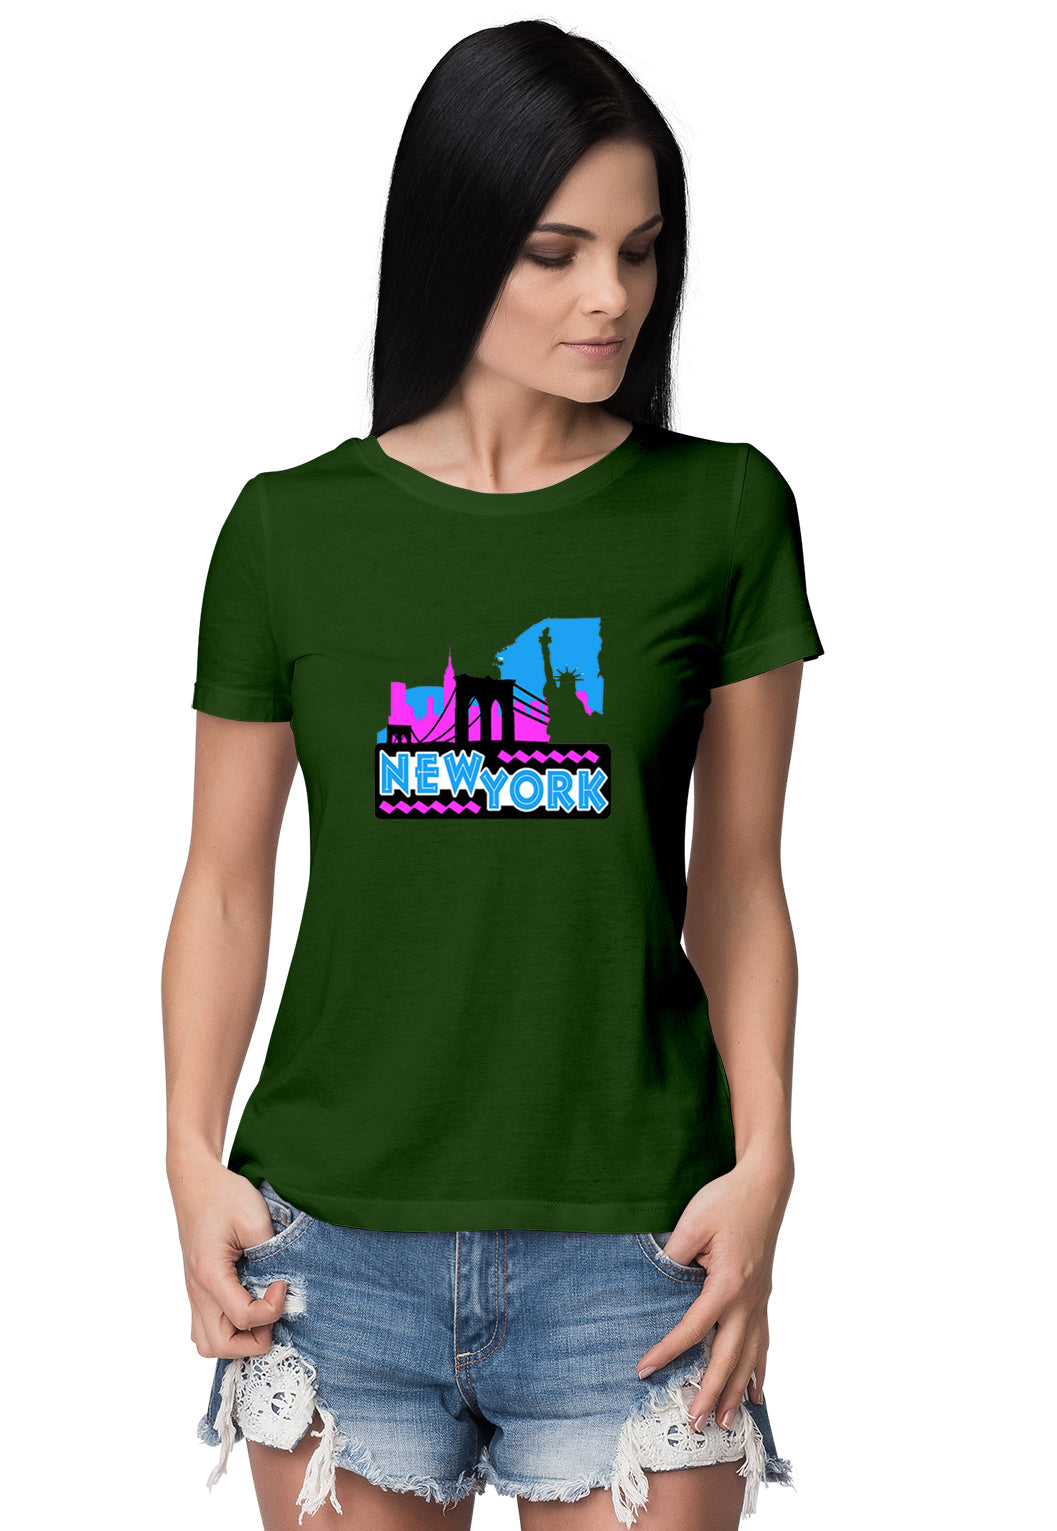 New York Women's Round Neck Half Sleeve - Pockets Moda Customise Hoodies and Tshirt